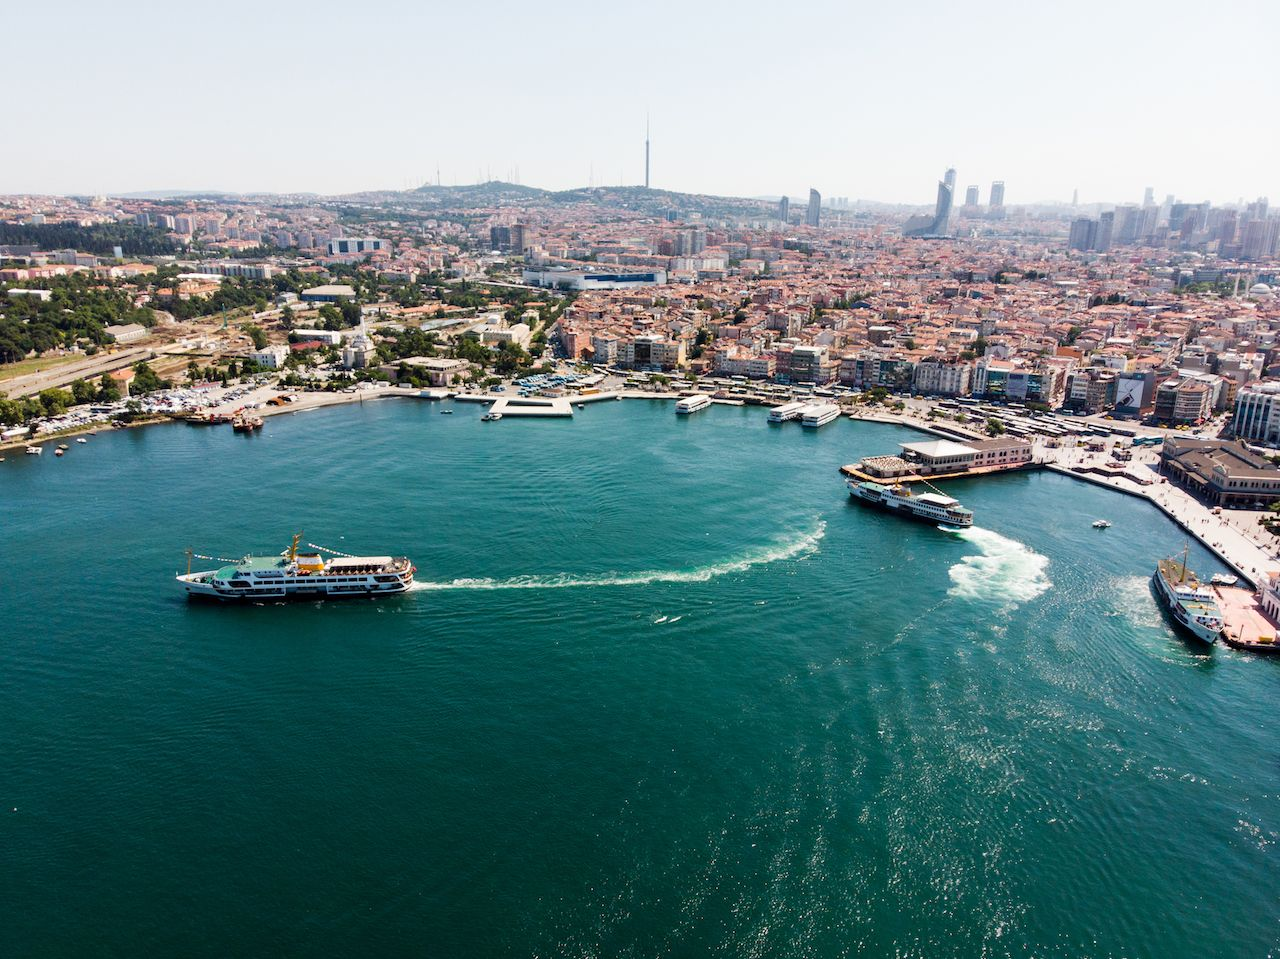 Aerial Drone View of Kadikoy Seaside in Istanbul